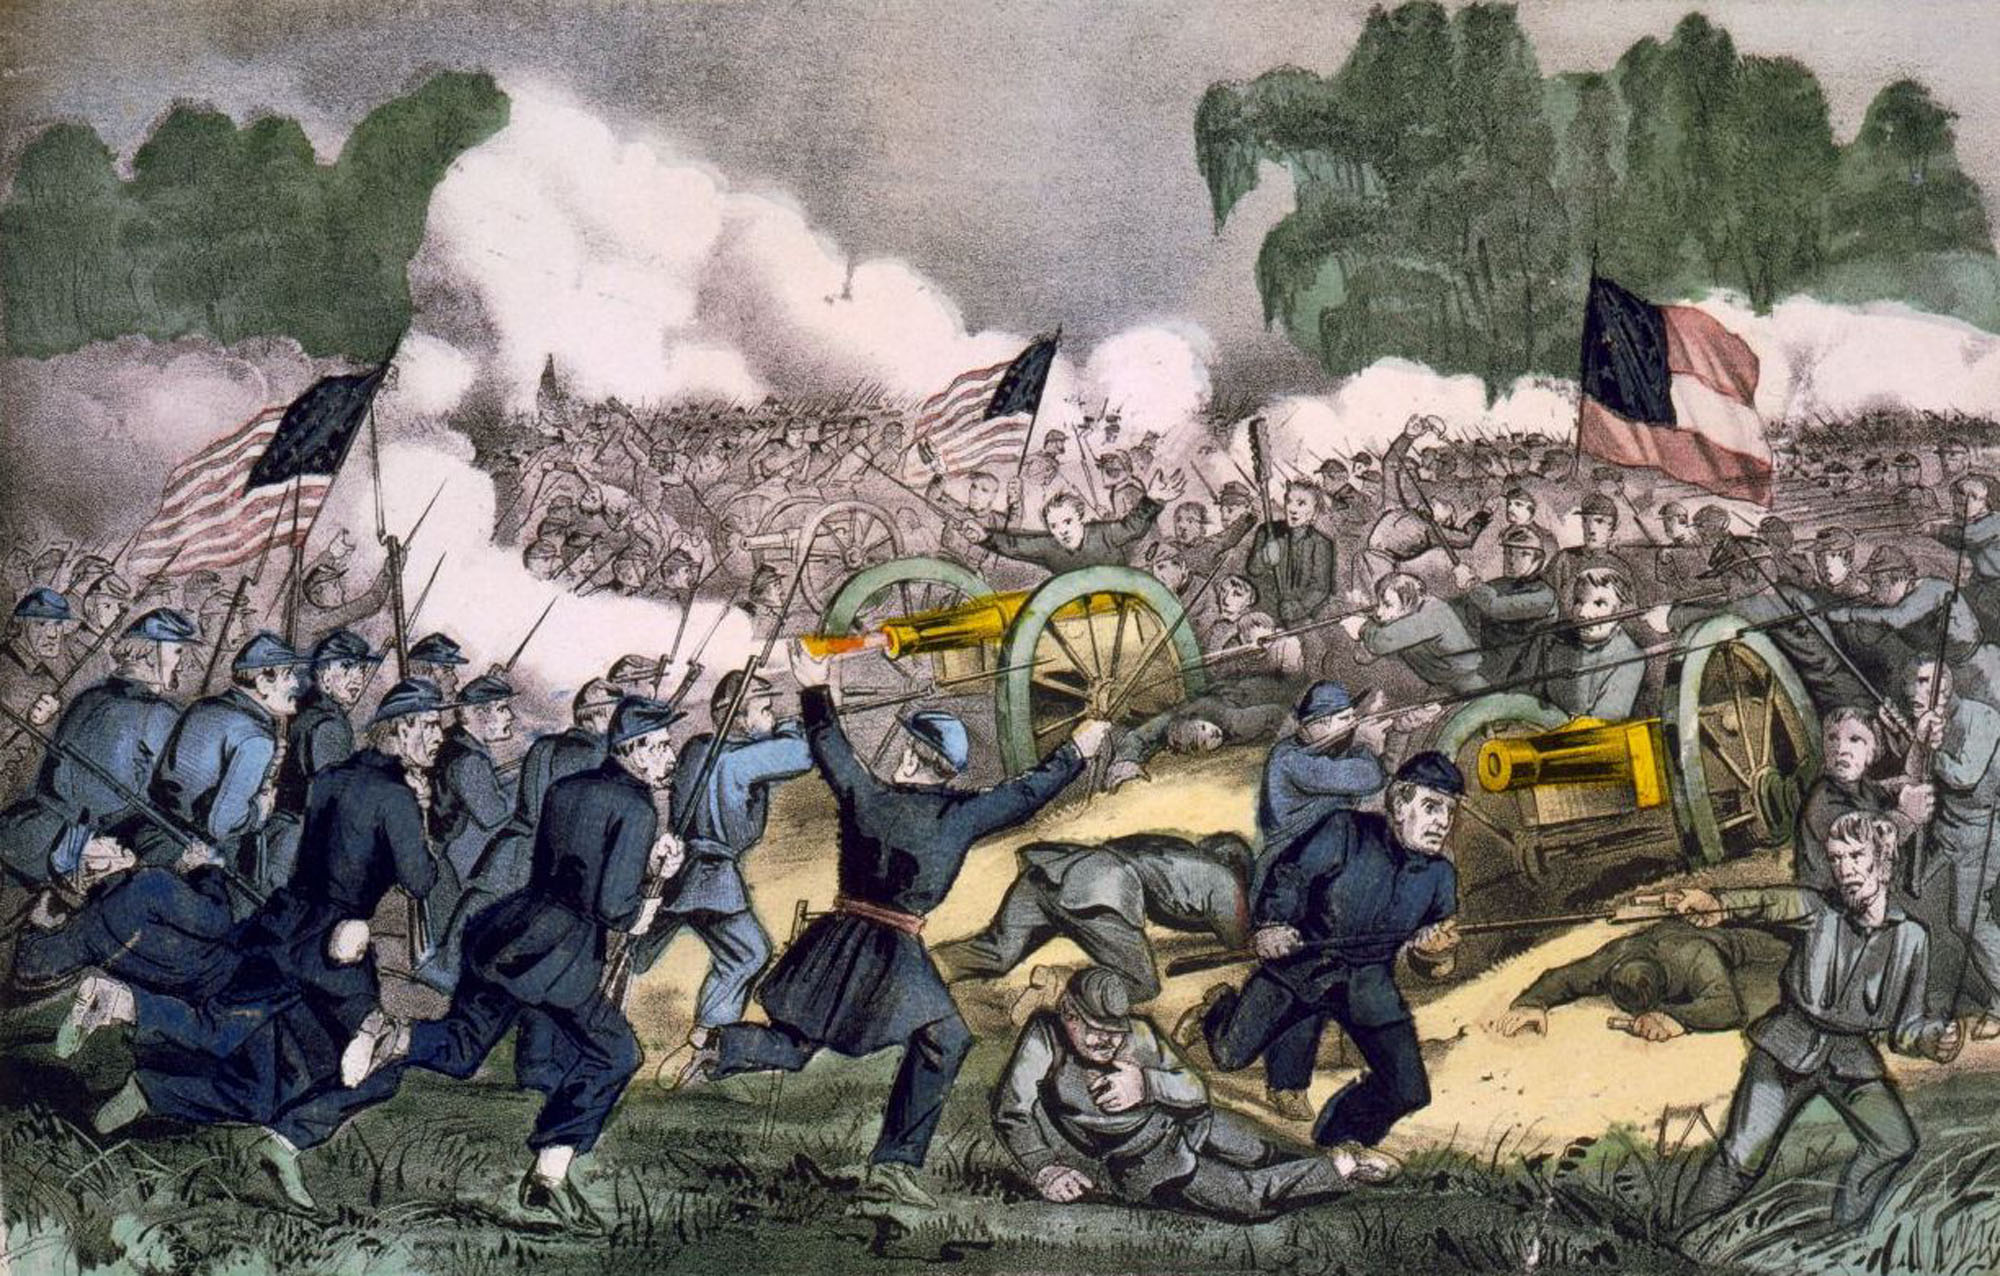 american civil war essay conclusion Articles and essays nonviolent philosophy and self defense the success of the movement for african american civil rights across the south in the 1960s has.